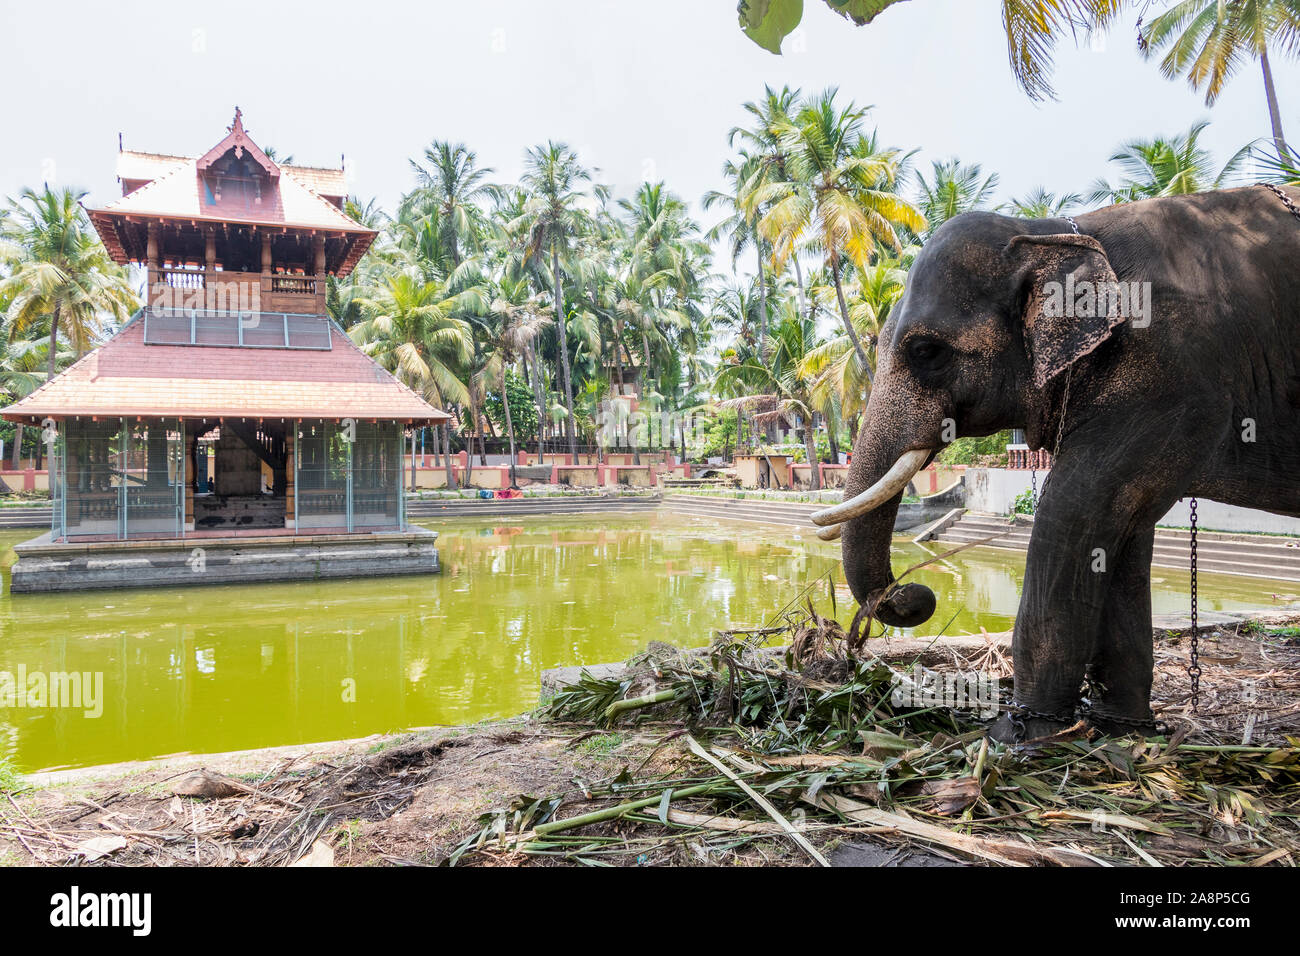 Elephant En Inde Signification siva temple photos & siva temple images - alamy